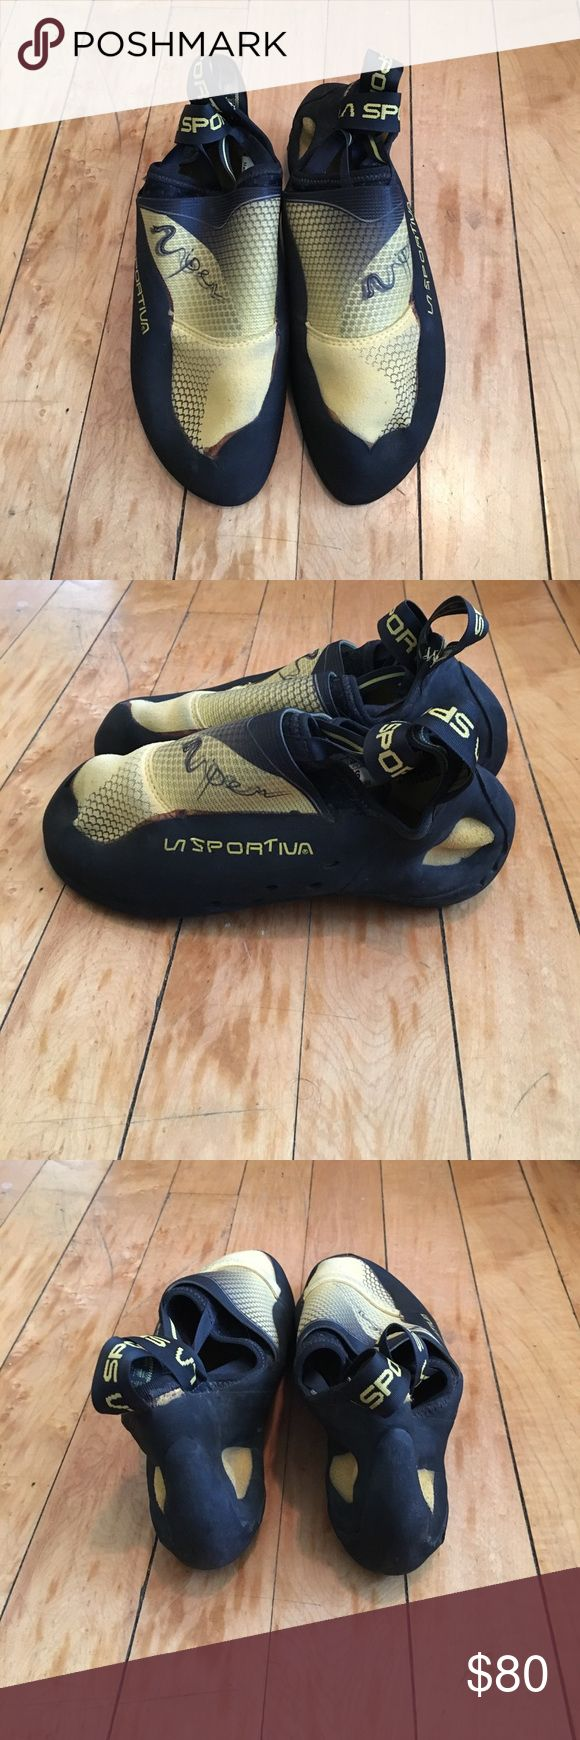 Selling this La Sportiva Viper Climbing Shoes on Poshmark! My username is: 2ndhandsummit. #shopmycloset #poshmark #fashion #shopping #style #forsale #la sportiva #Shoes